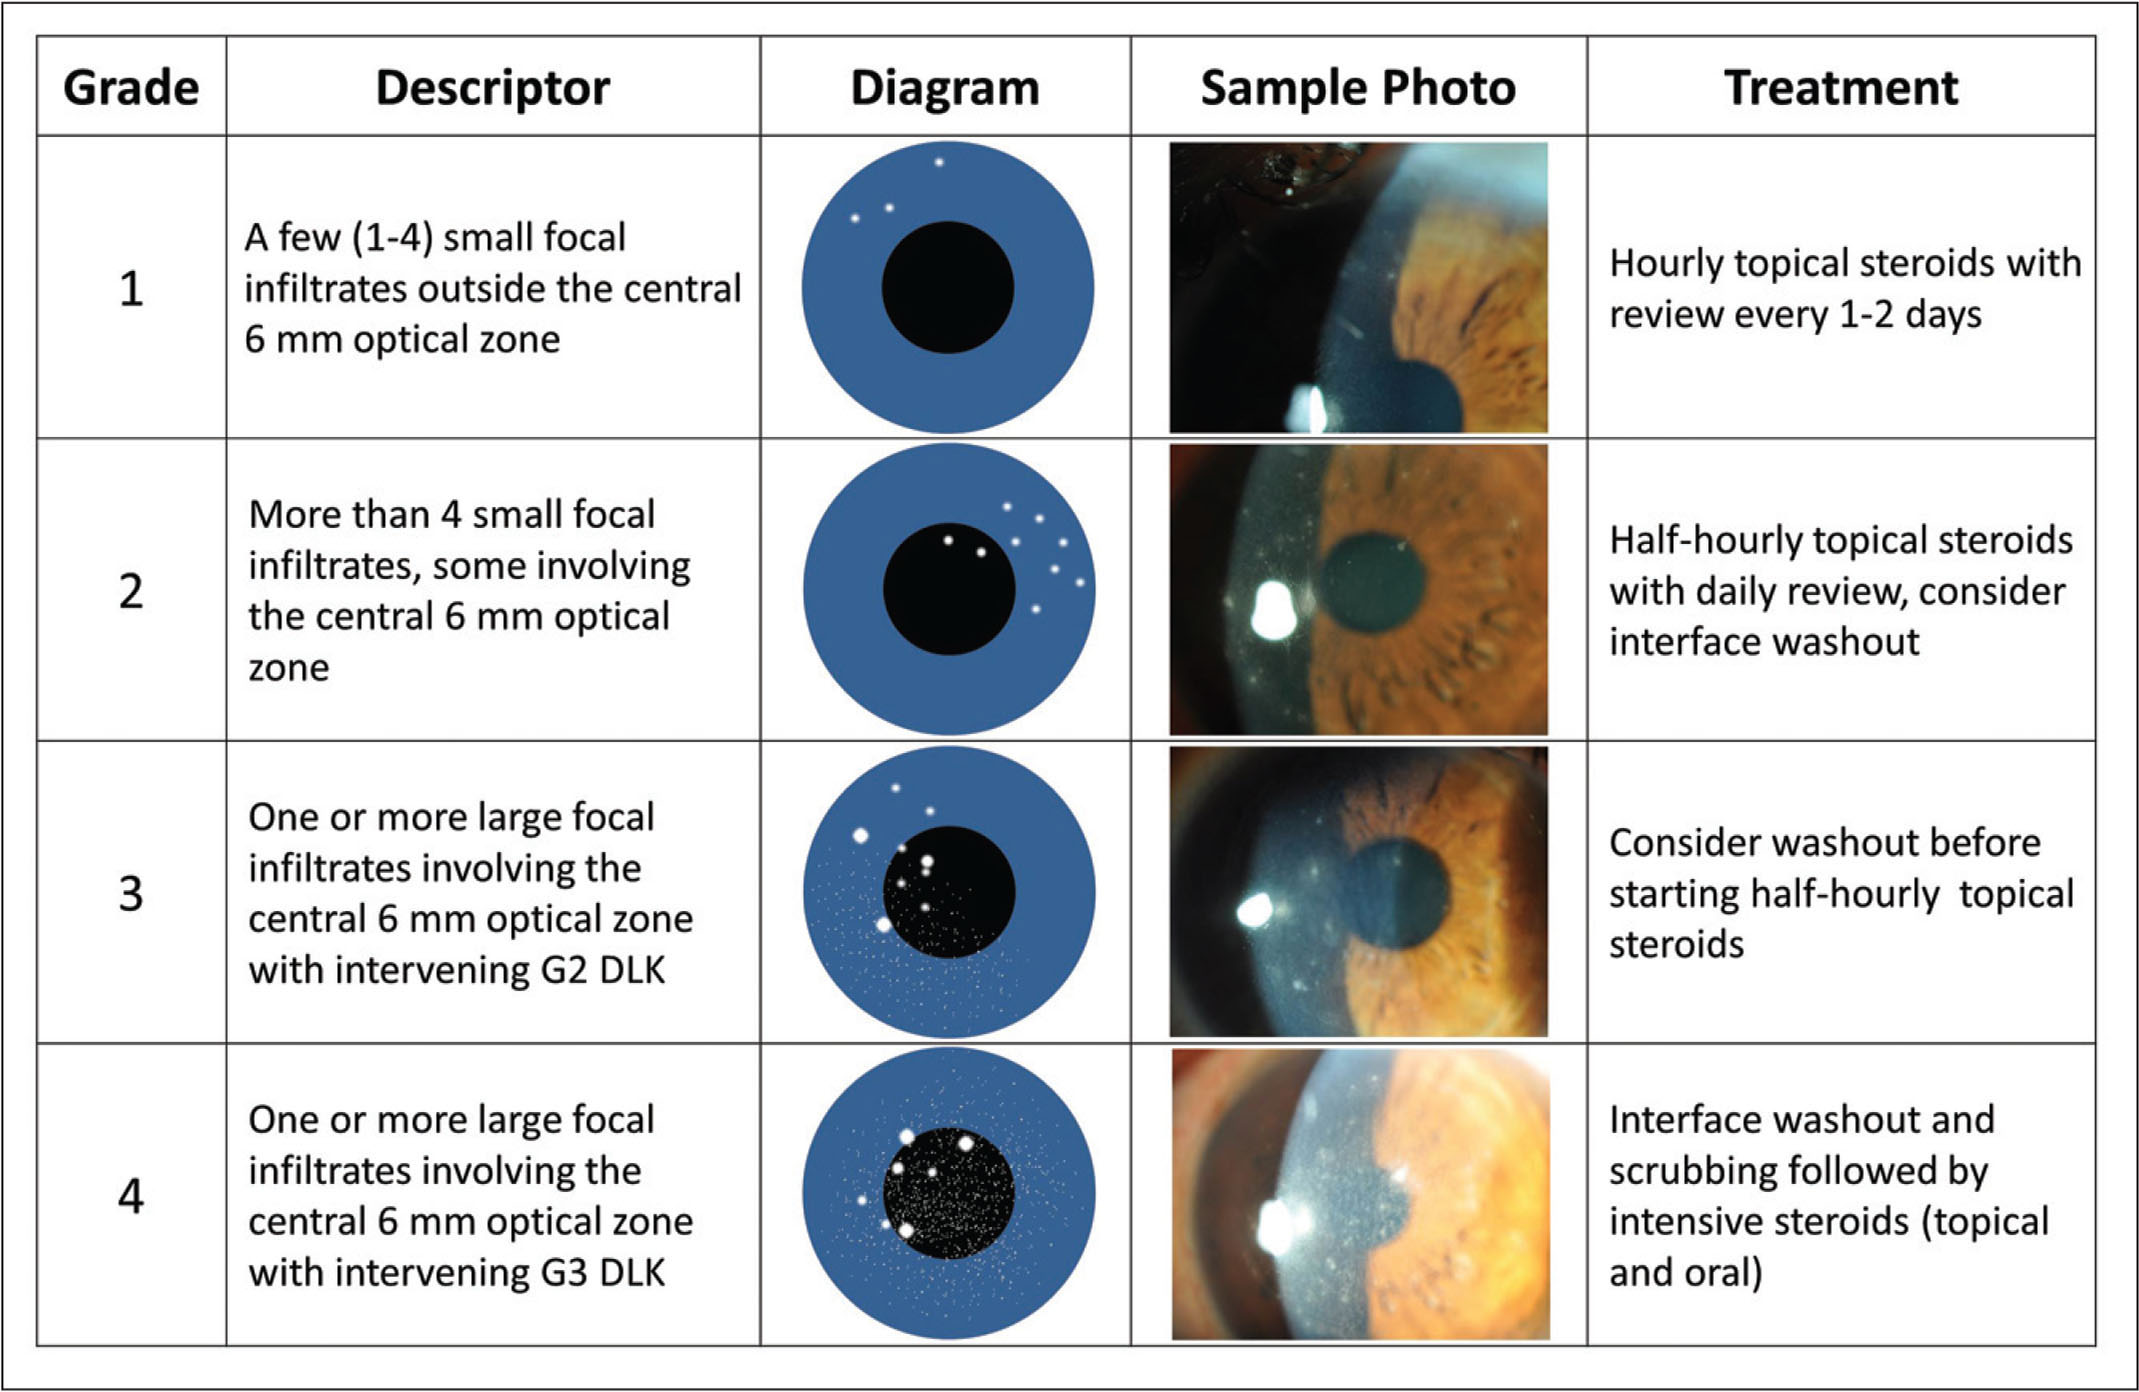 Grading scale for sterile multifocal inflammatory keratitis. The scale includes a descriptor of the appearance (column 2), a diagrammatic example of the appearance (column 3), a slit-lamp photograph sample (column 4), and a suggested treatment approach for each corresponding grade. DLK = diffuse lamellar keratitis